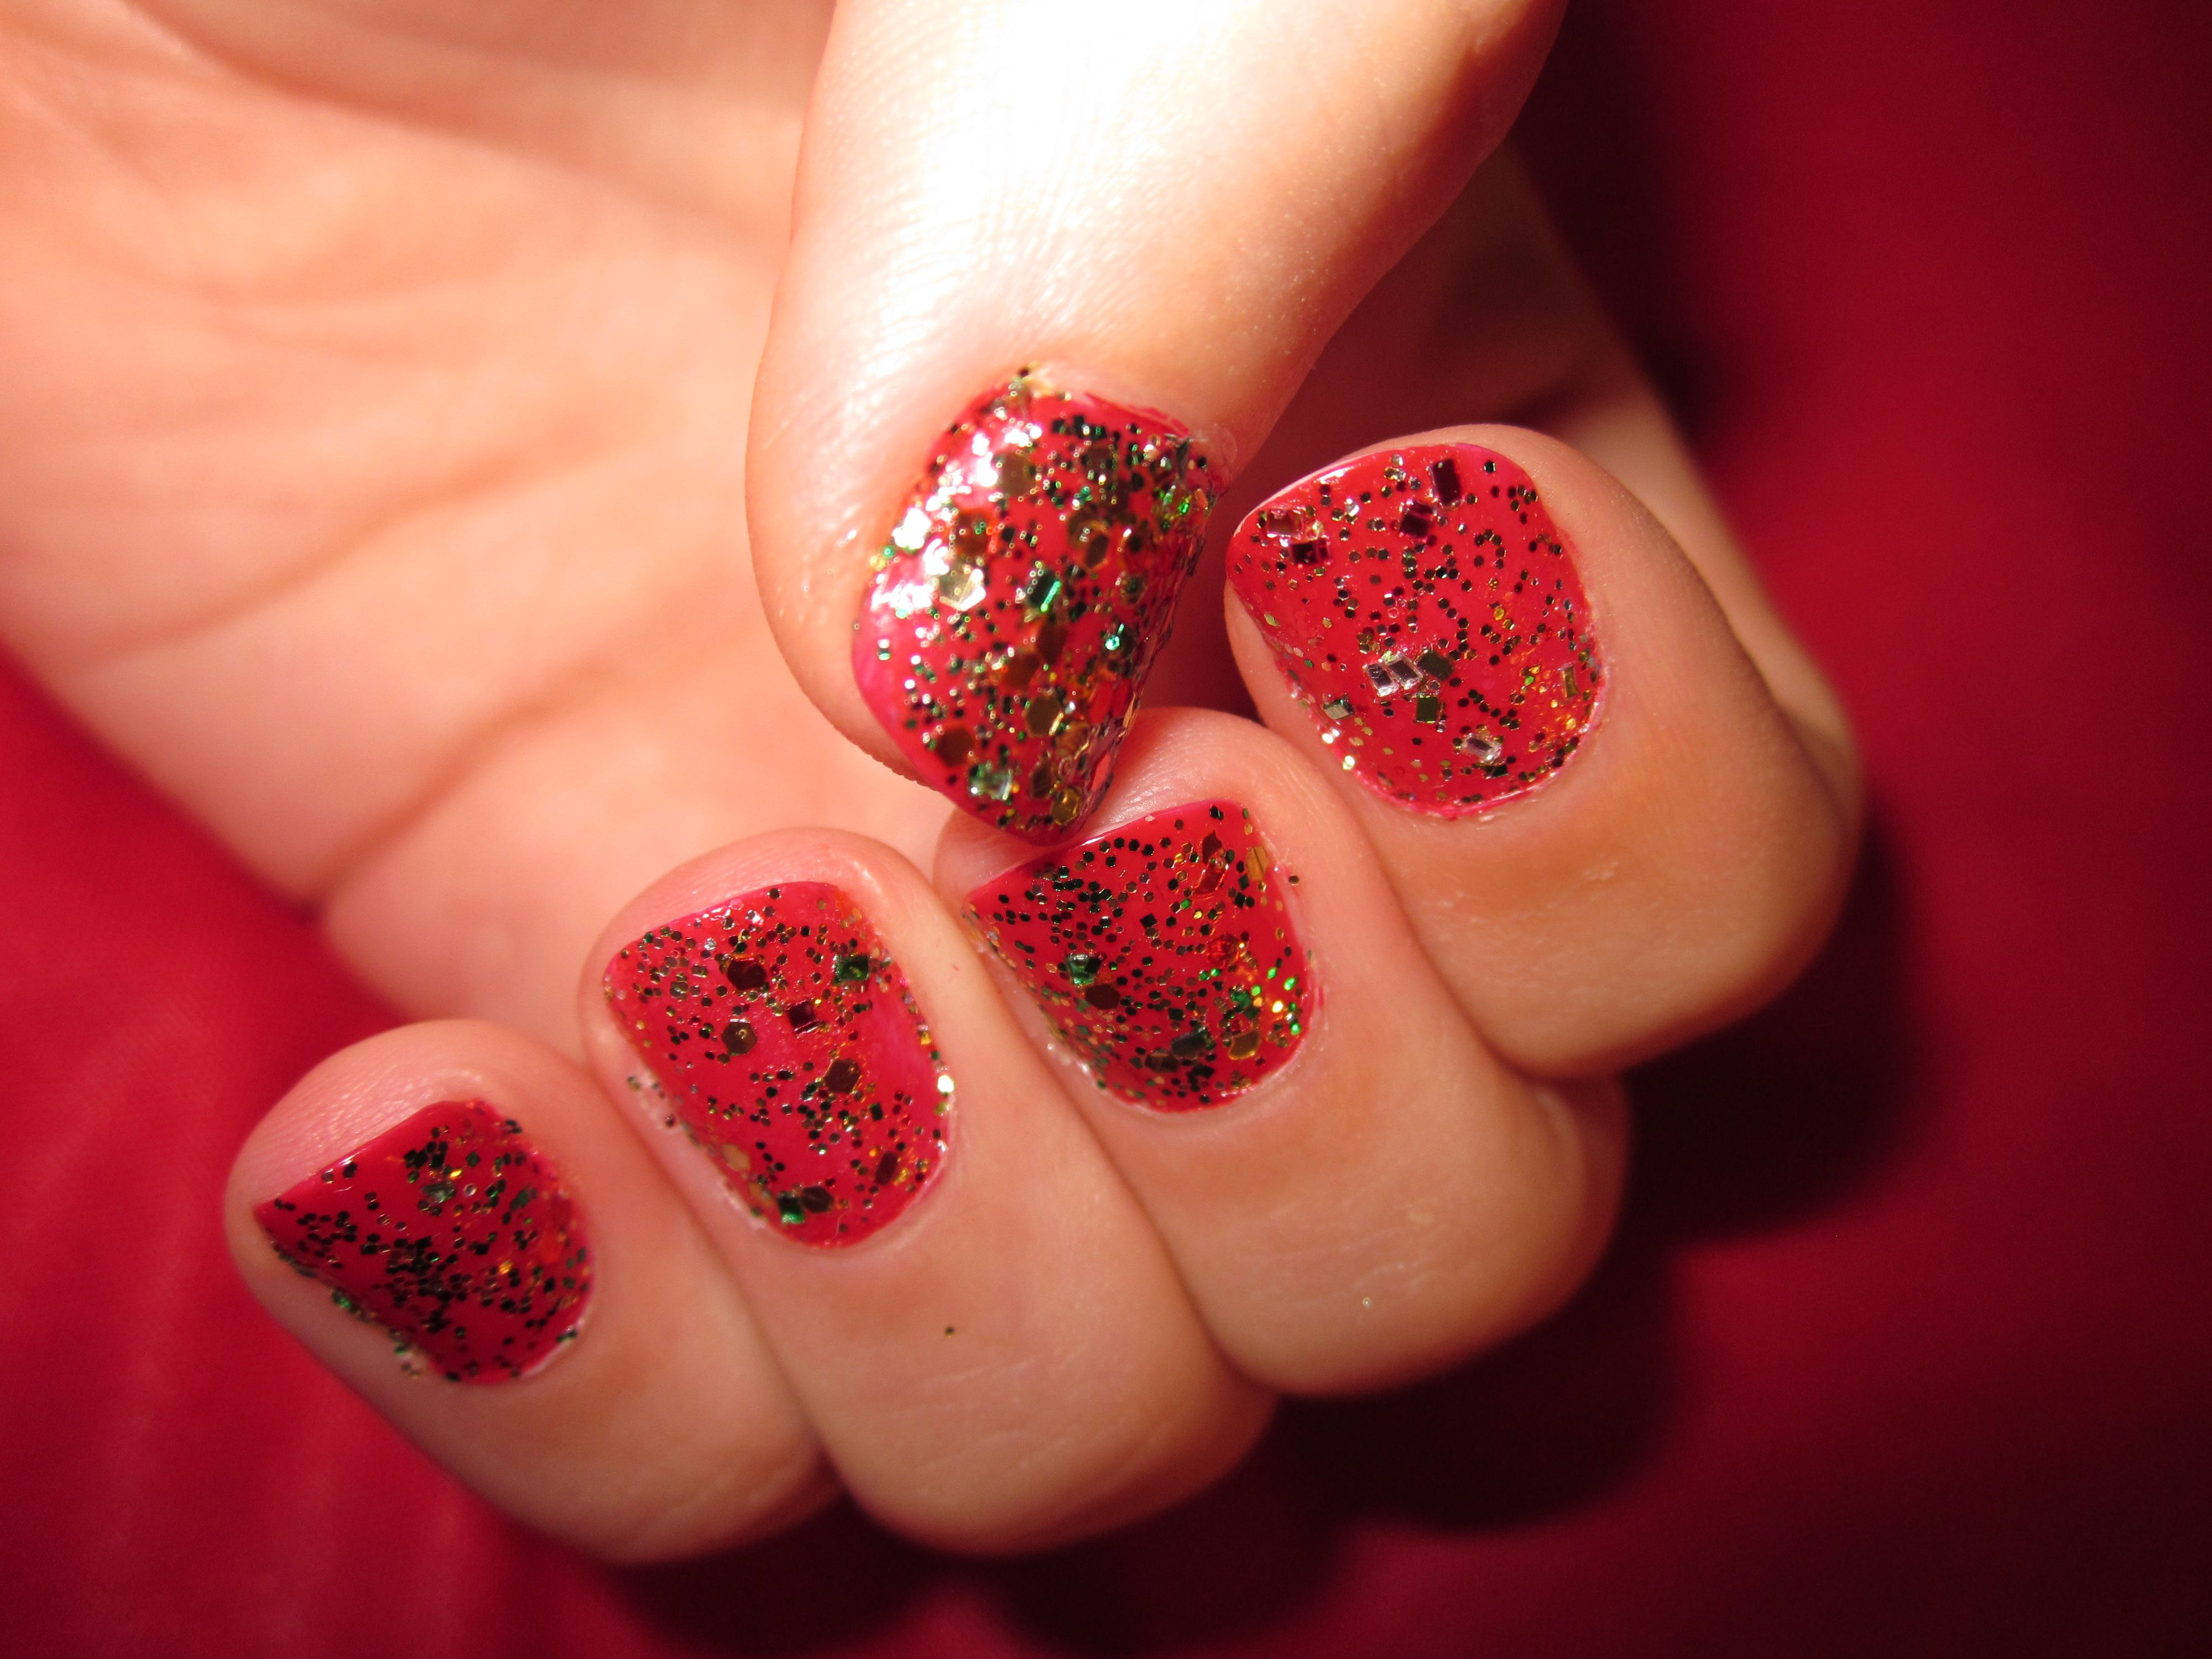 My Christmas Nails!   Sally Hansen Extreme Nails in Cherry Red, left over glitter in various sizes colors shapes and sizes from holiday projects and Sally Hansen Super Shiny Top Coat. Bring on the festivities!